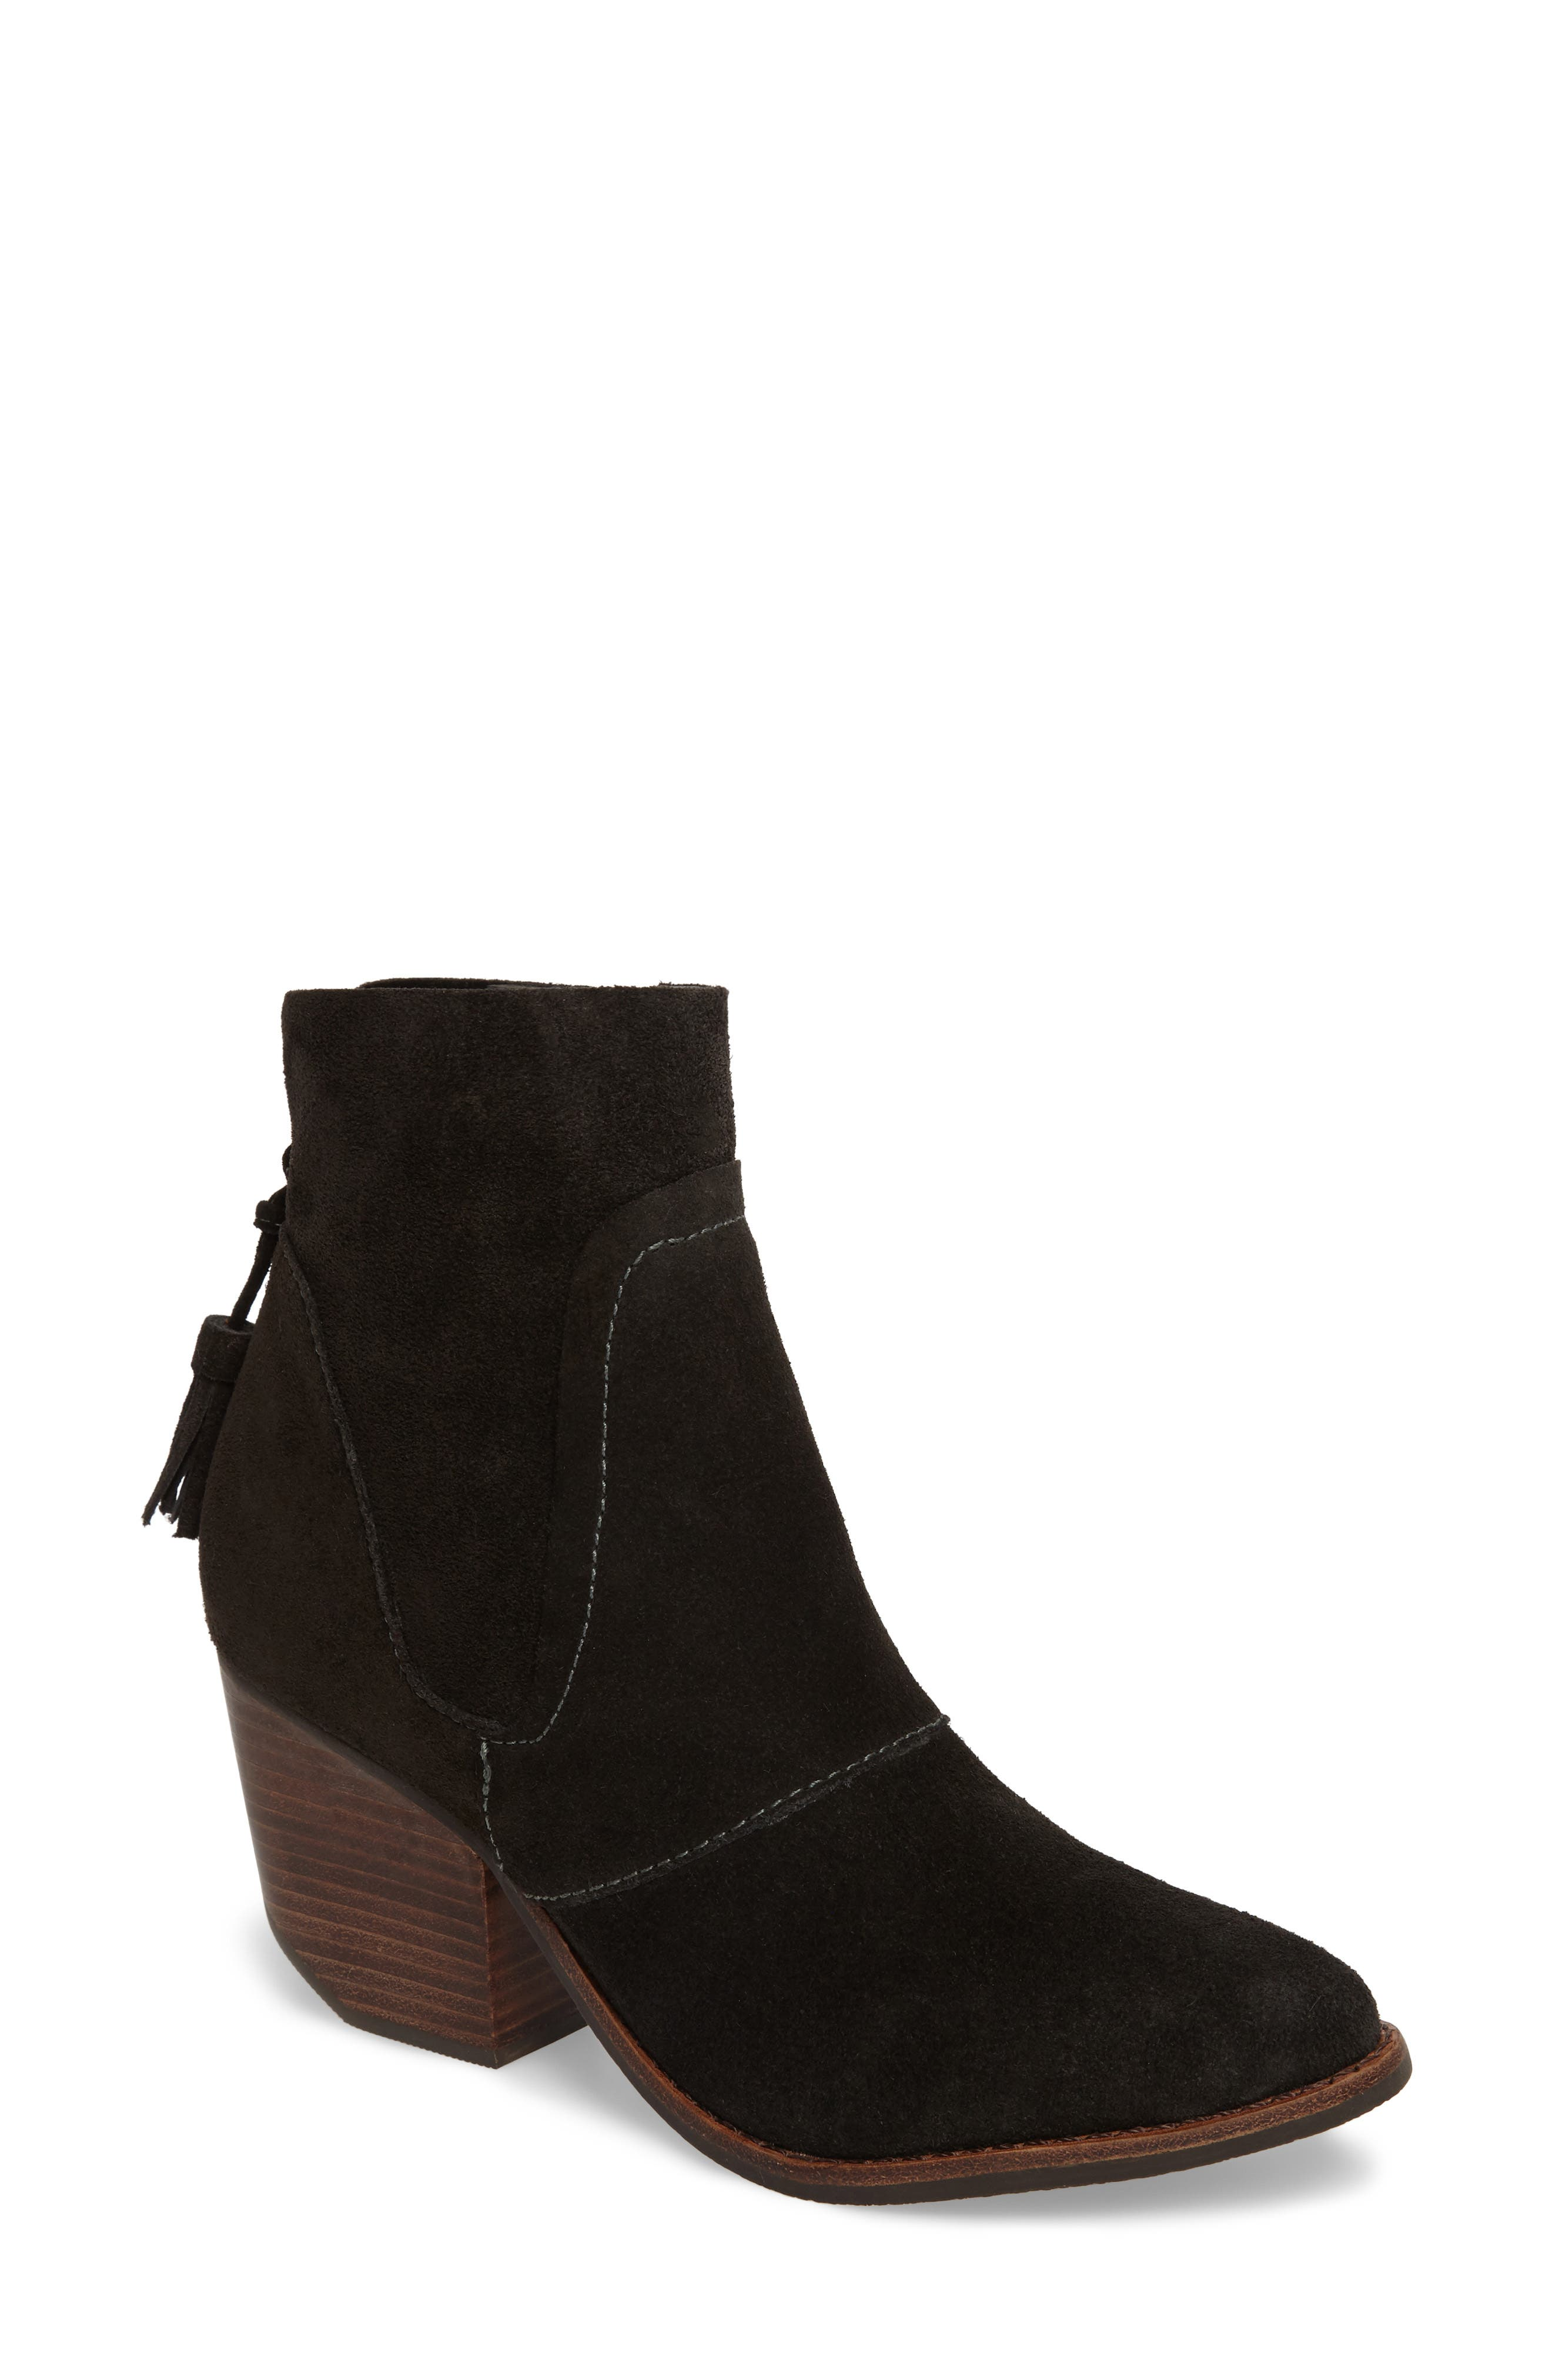 Laney Notched Heel Bootie,                         Main,                         color, Forest Suede